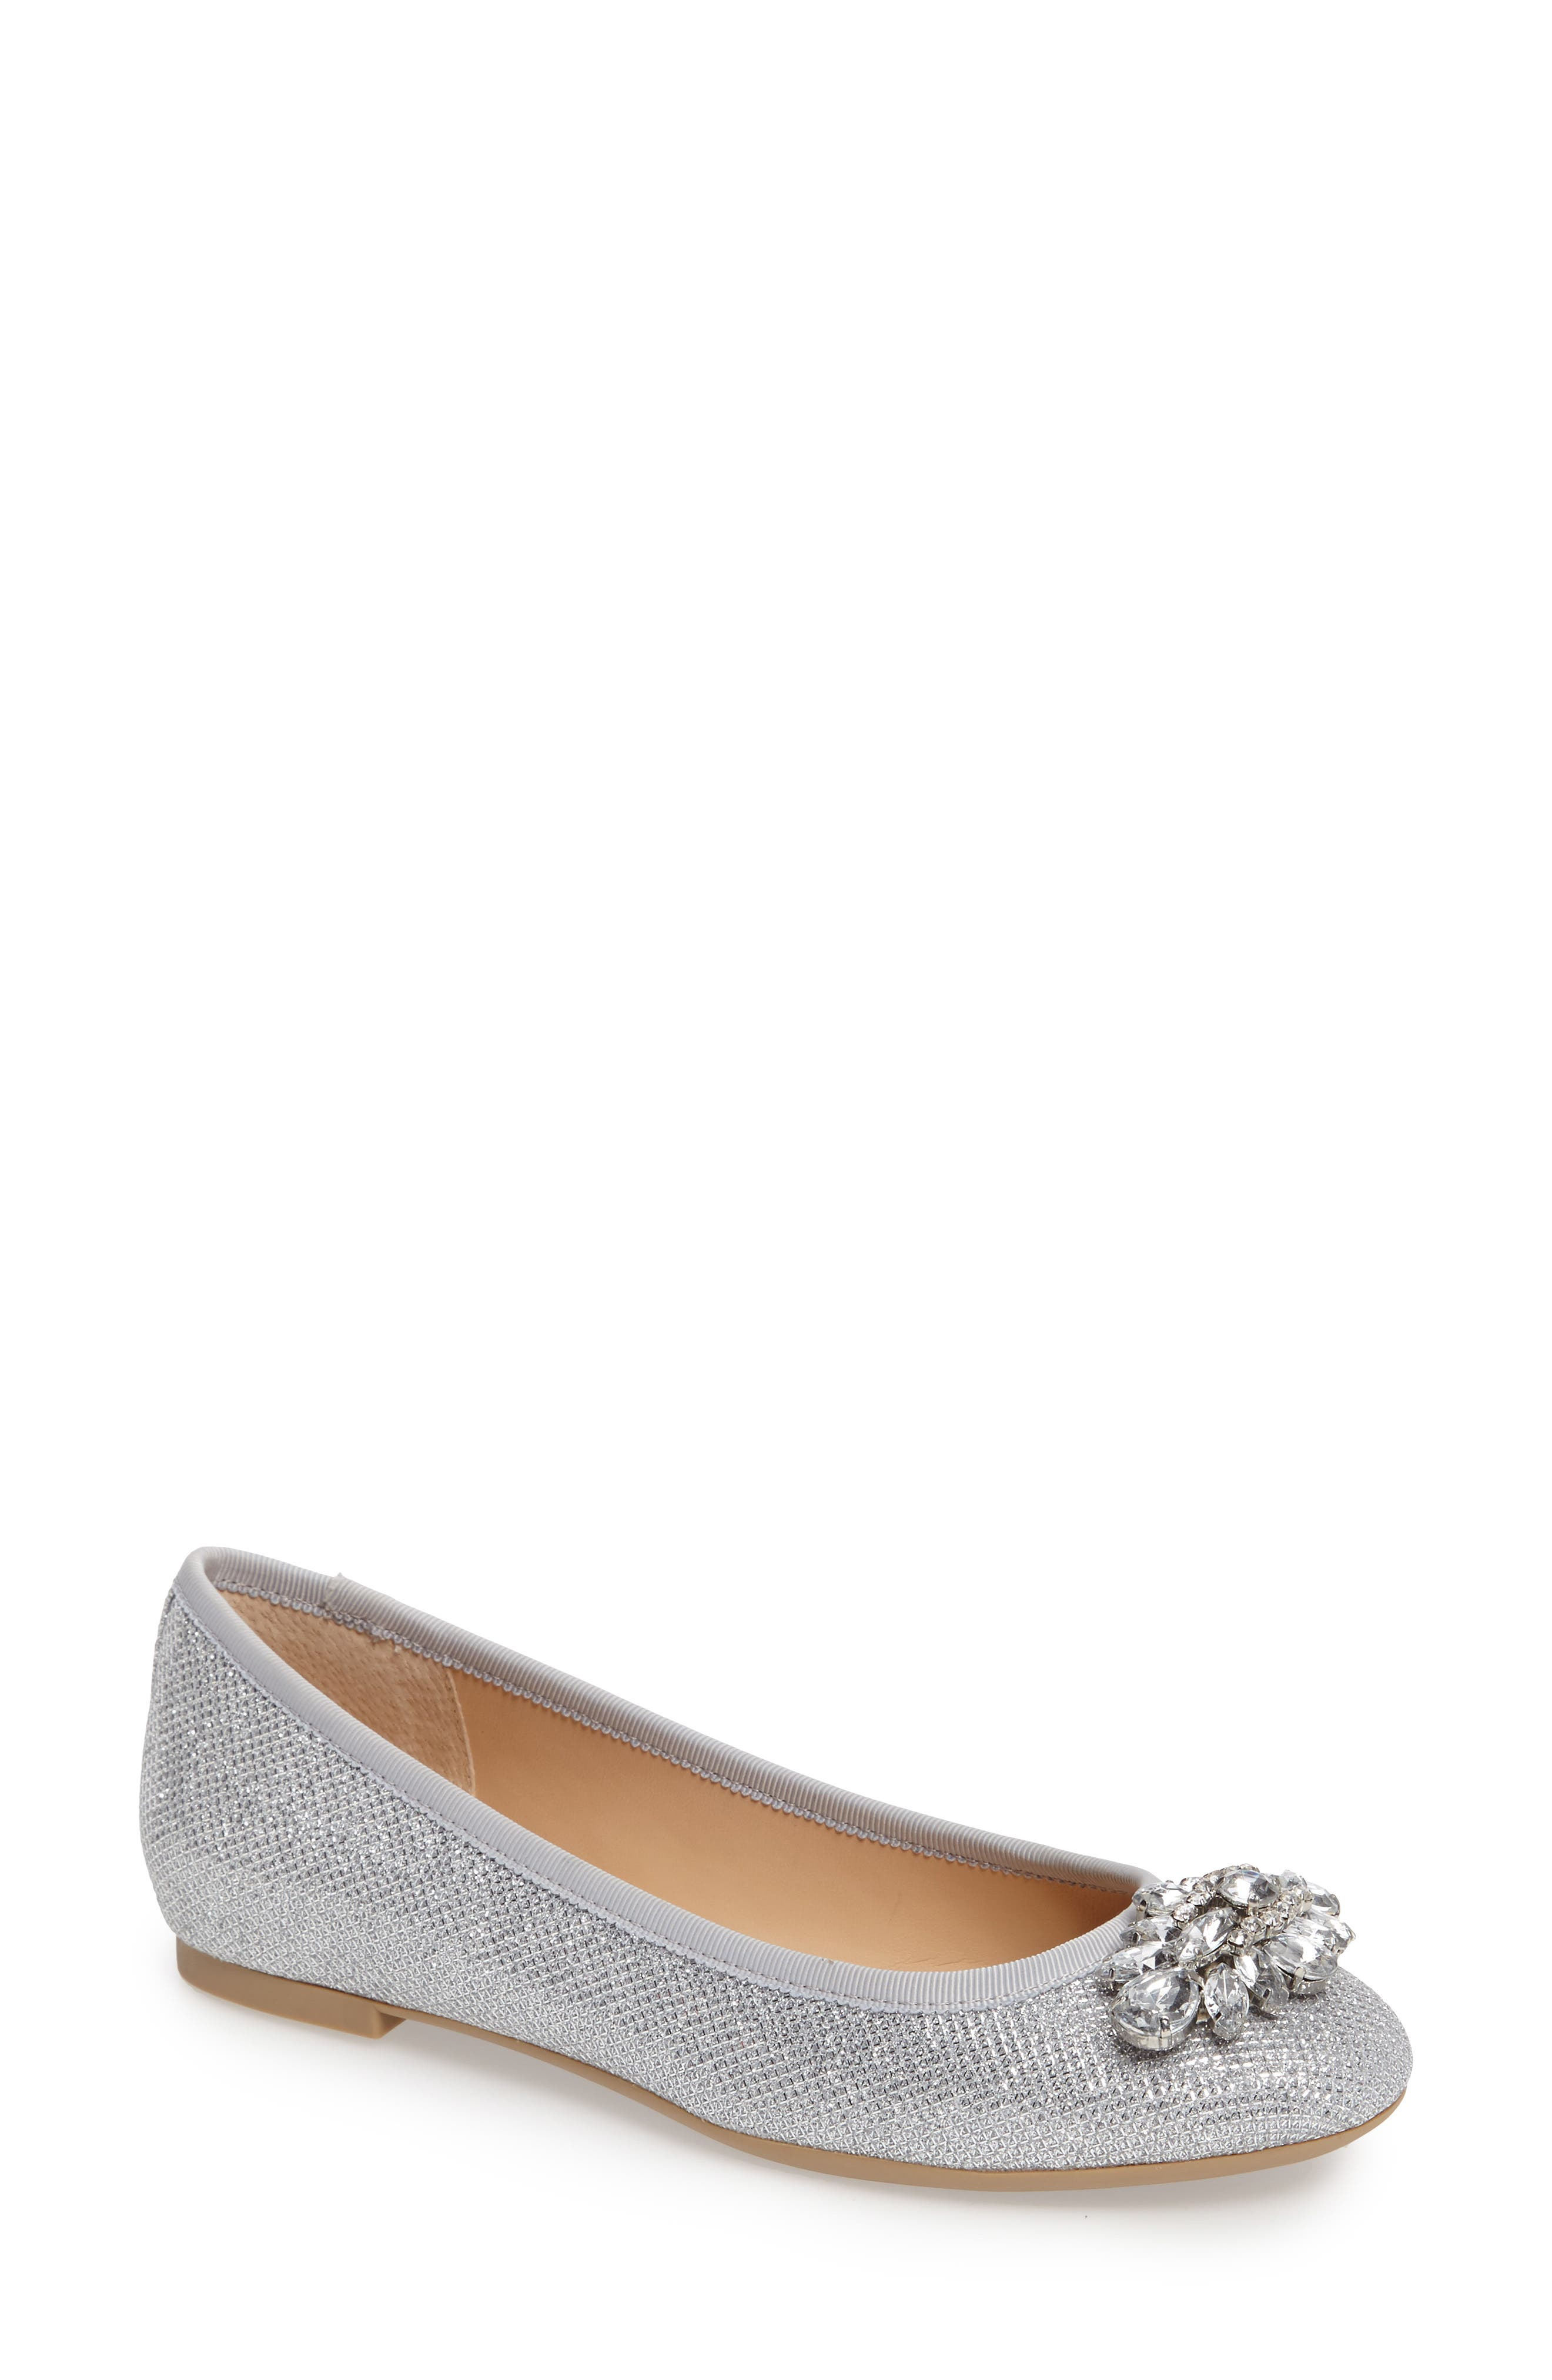 Cabella Embellished Ballet Flat,                             Main thumbnail 1, color,                             SILVER FABRIC